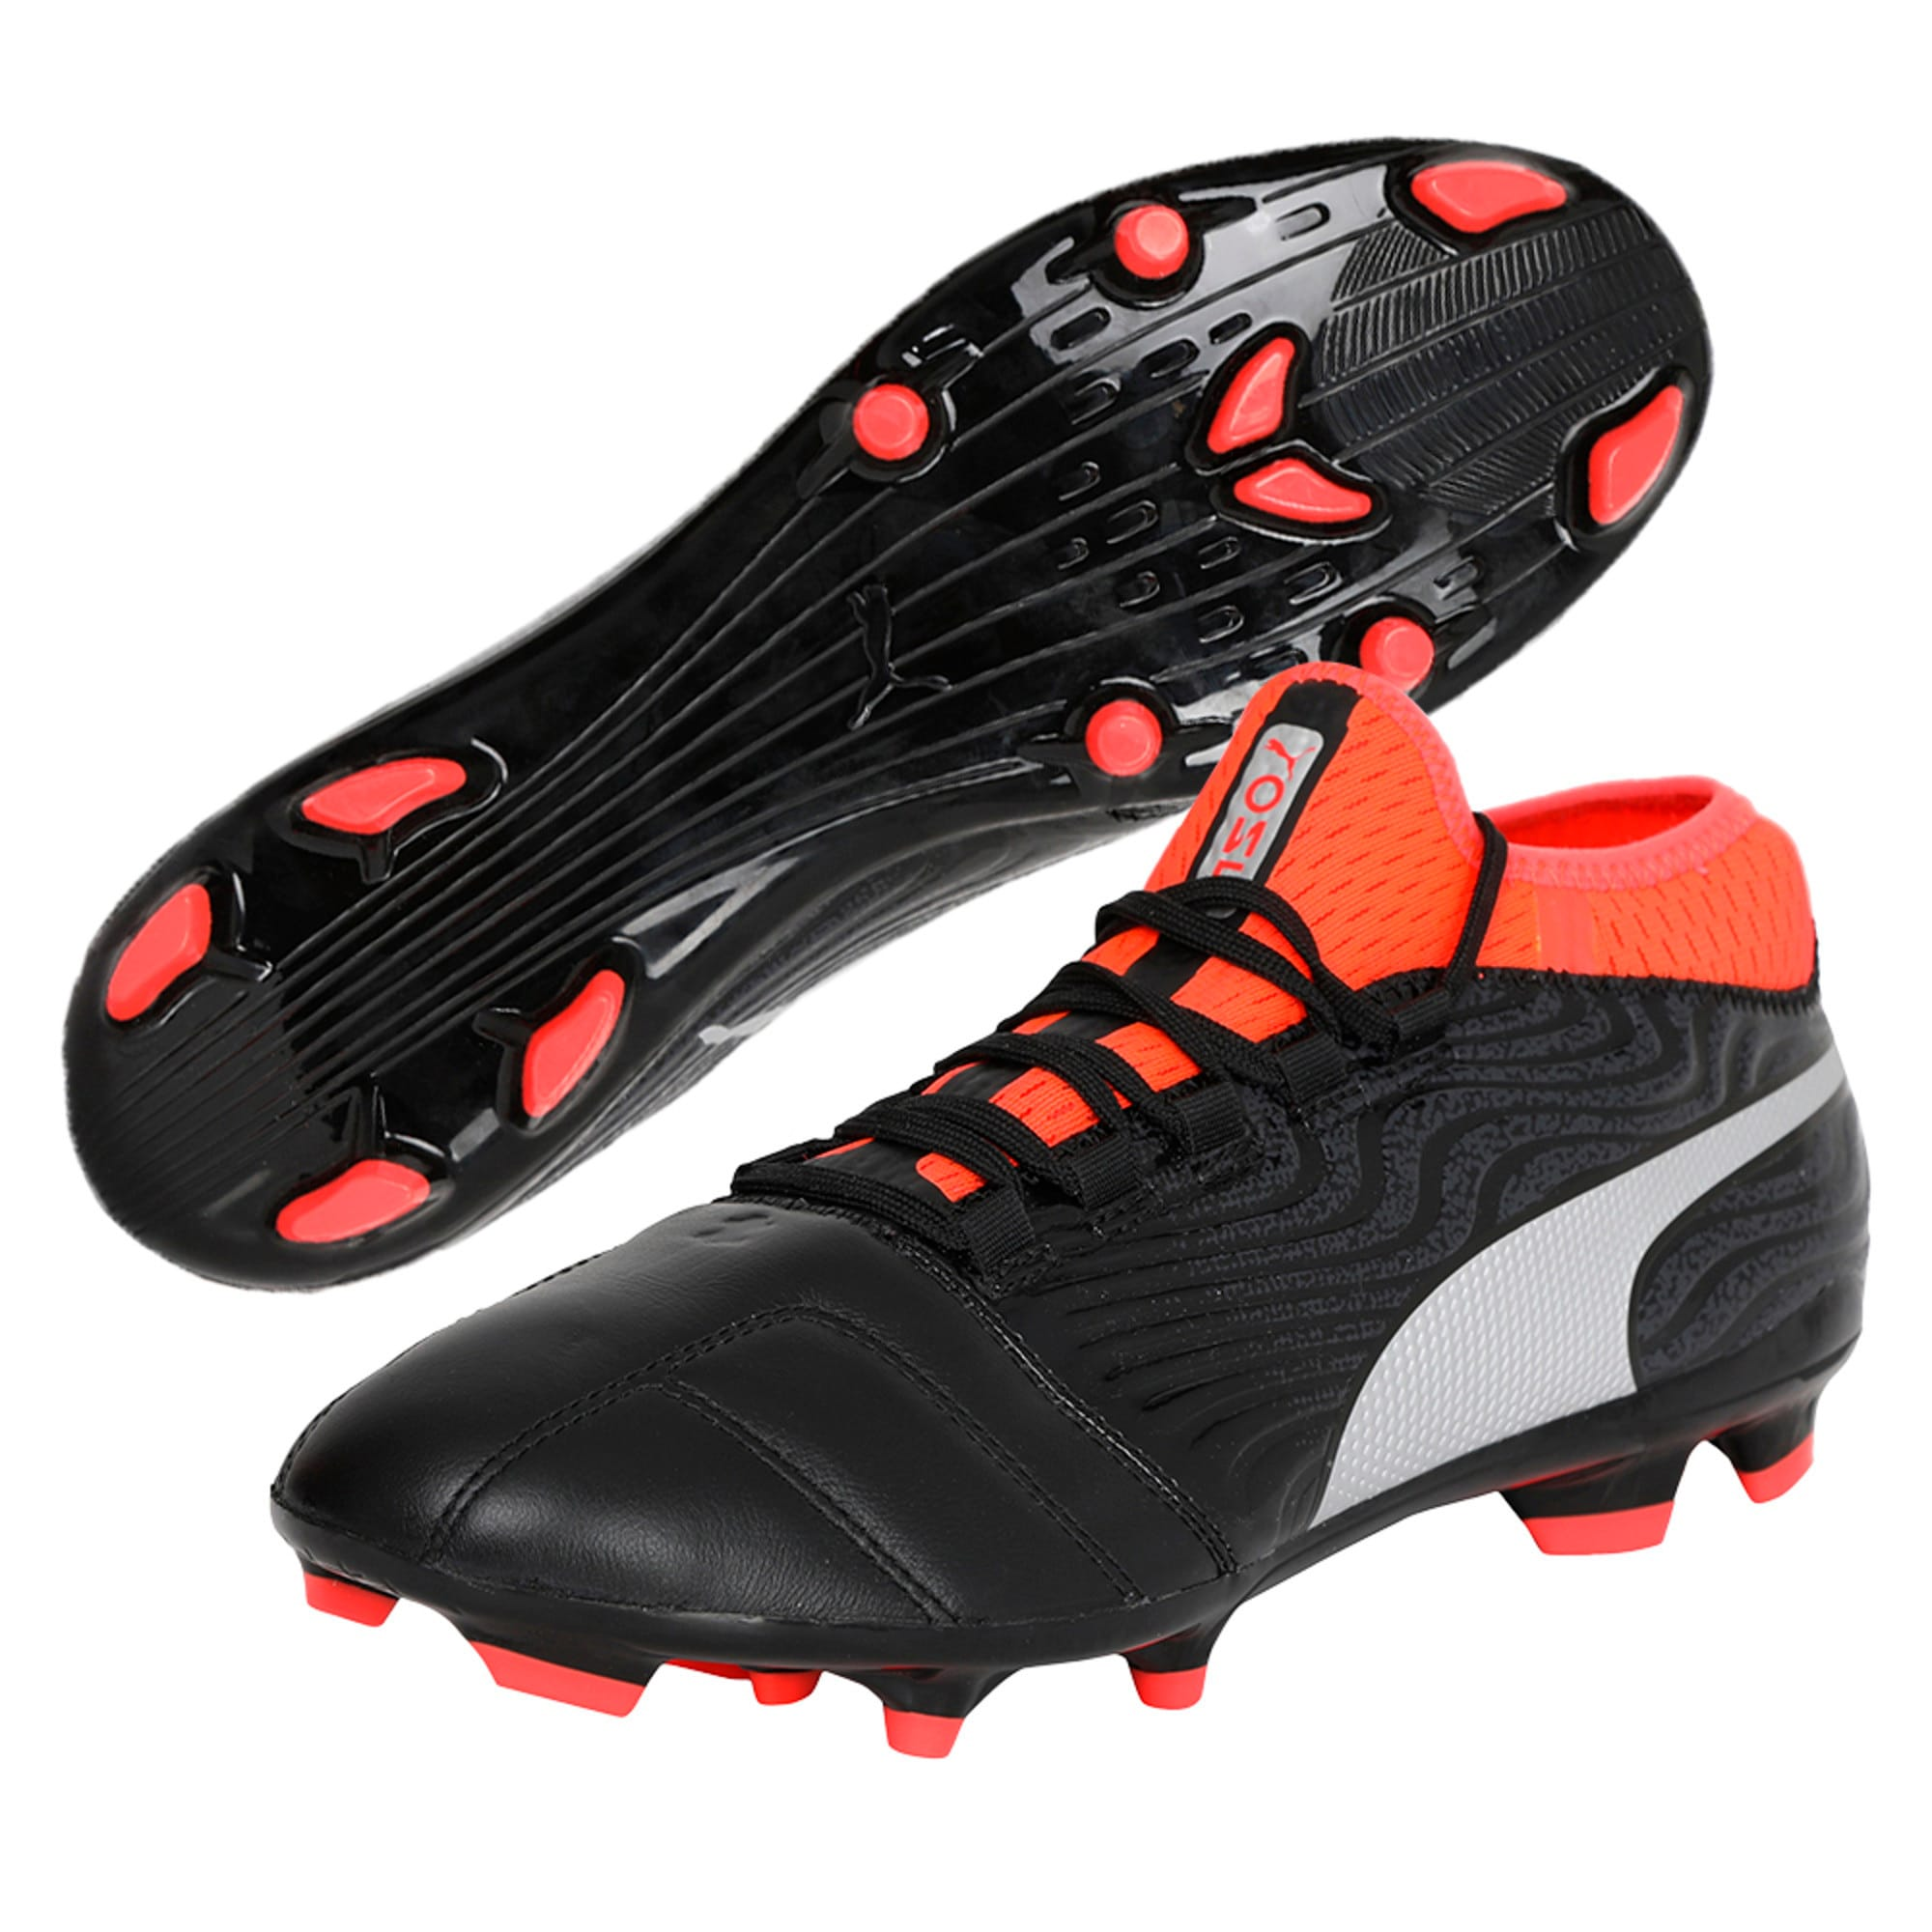 Thumbnail 6 of ONE 18.3 FG Men's Football Boots, Black-Silver-Red, medium-IND